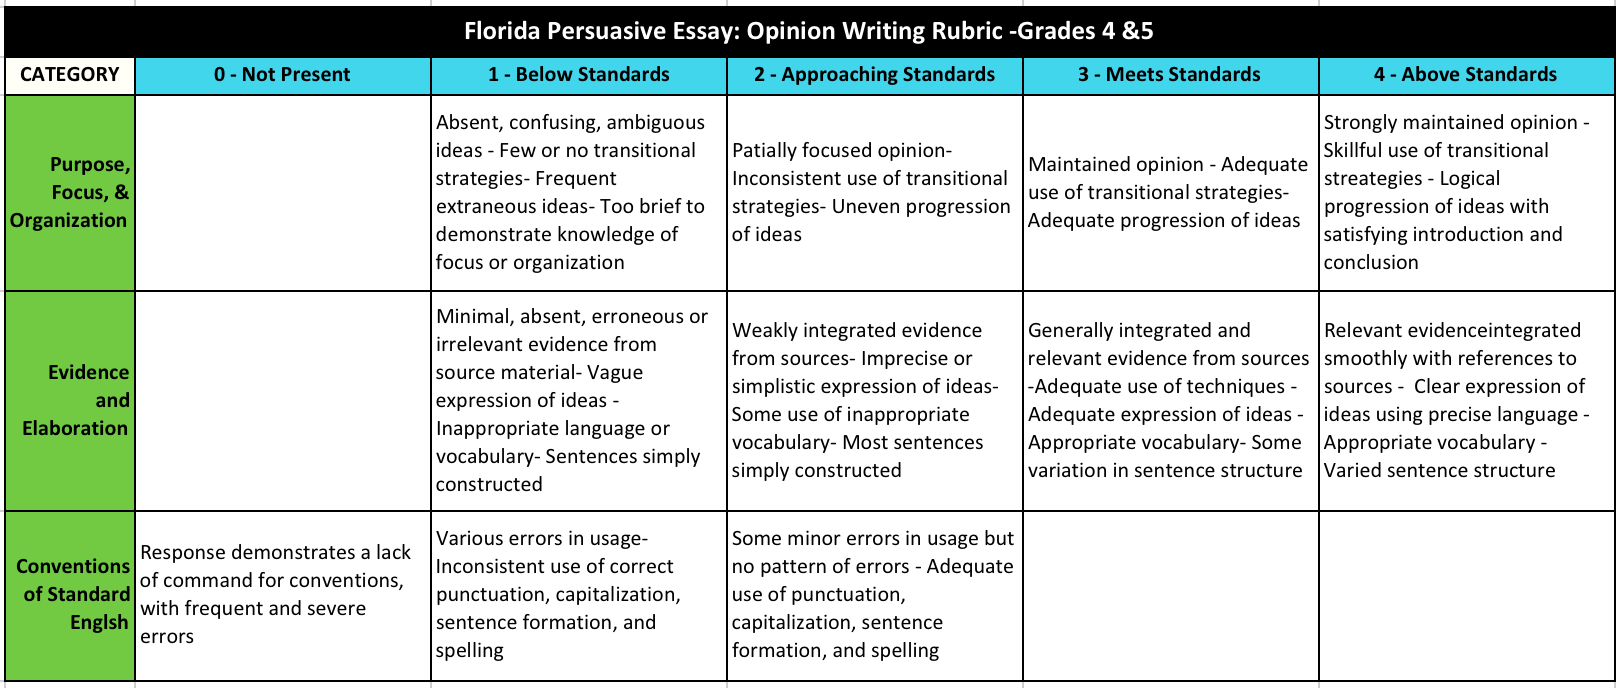 grading rubric for persuasive essay